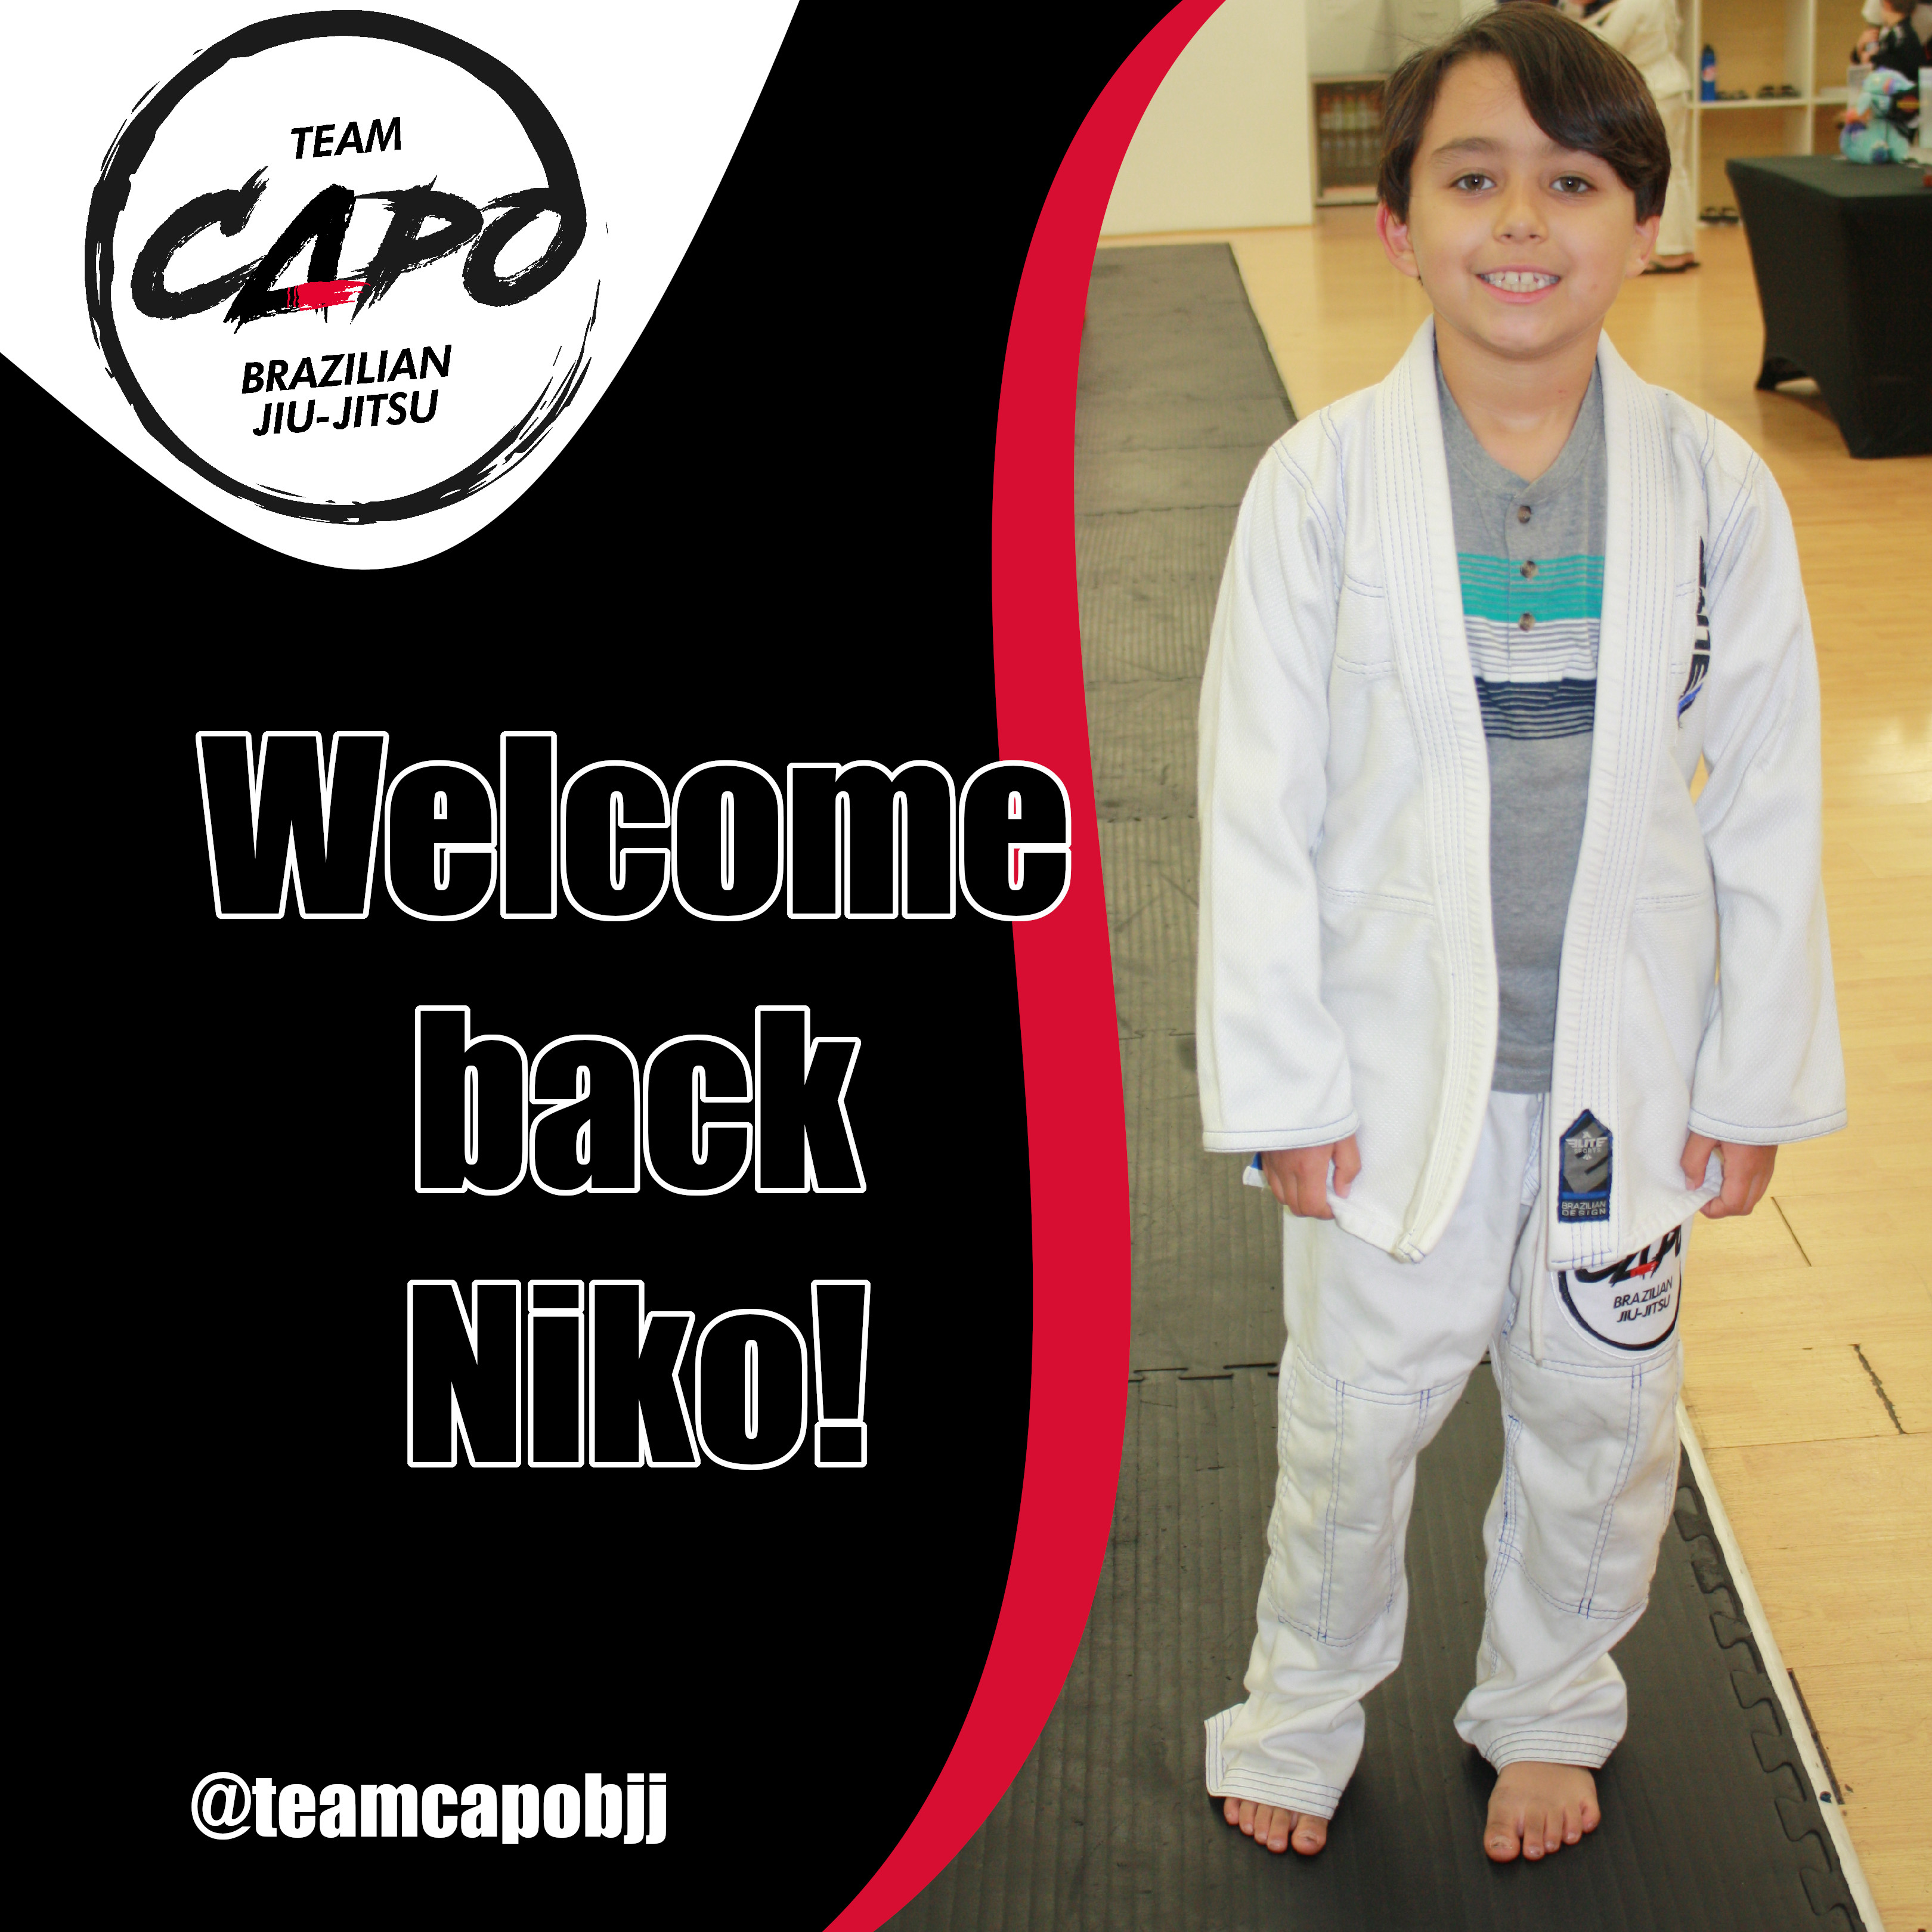 Welcome back Niko!